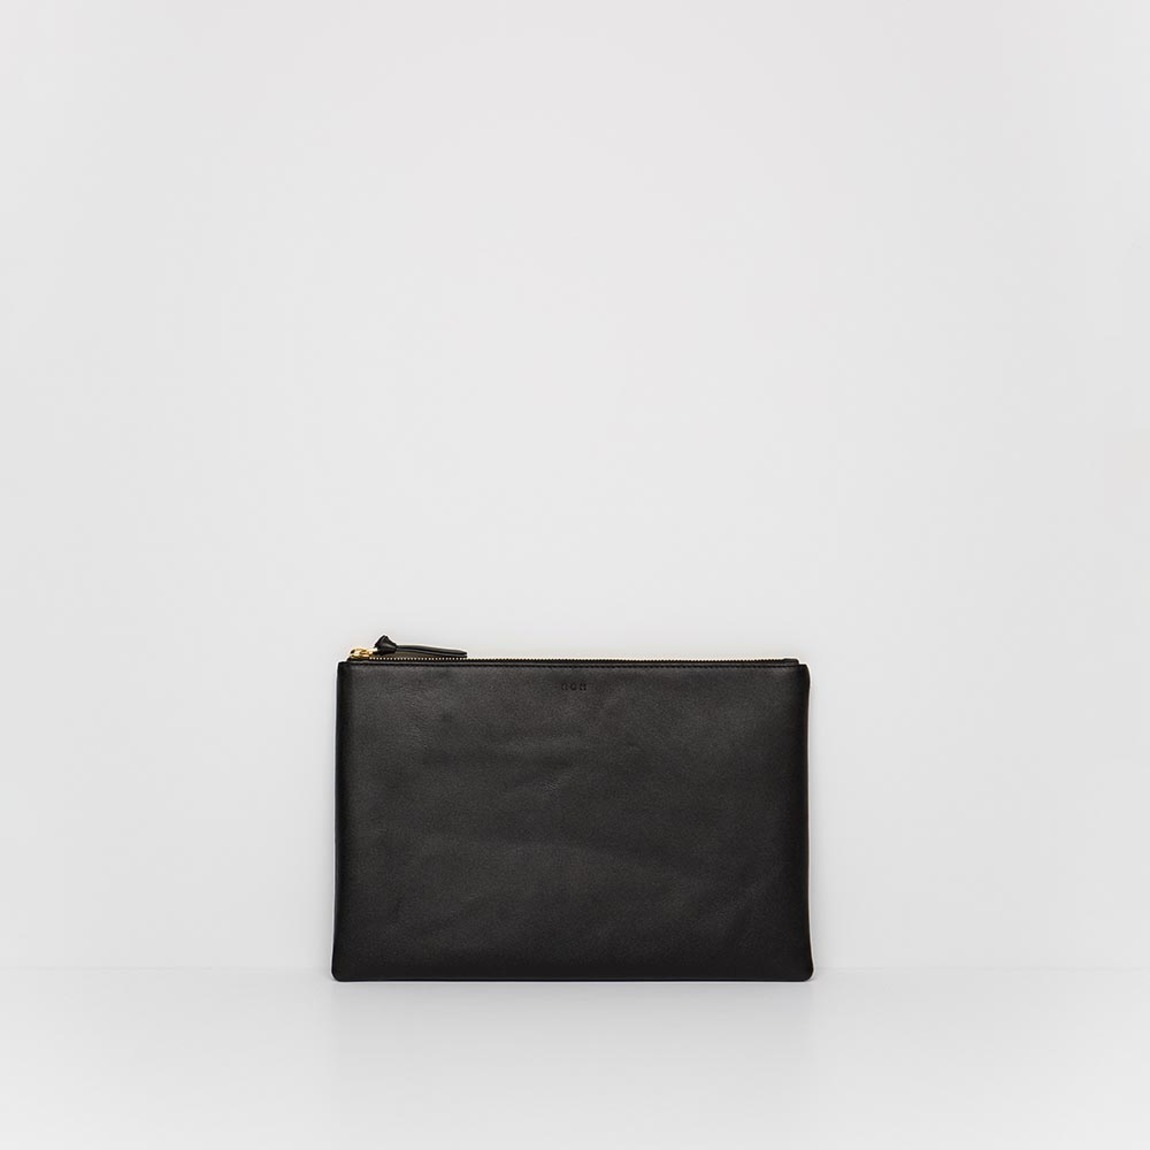 Basic Clutch Black